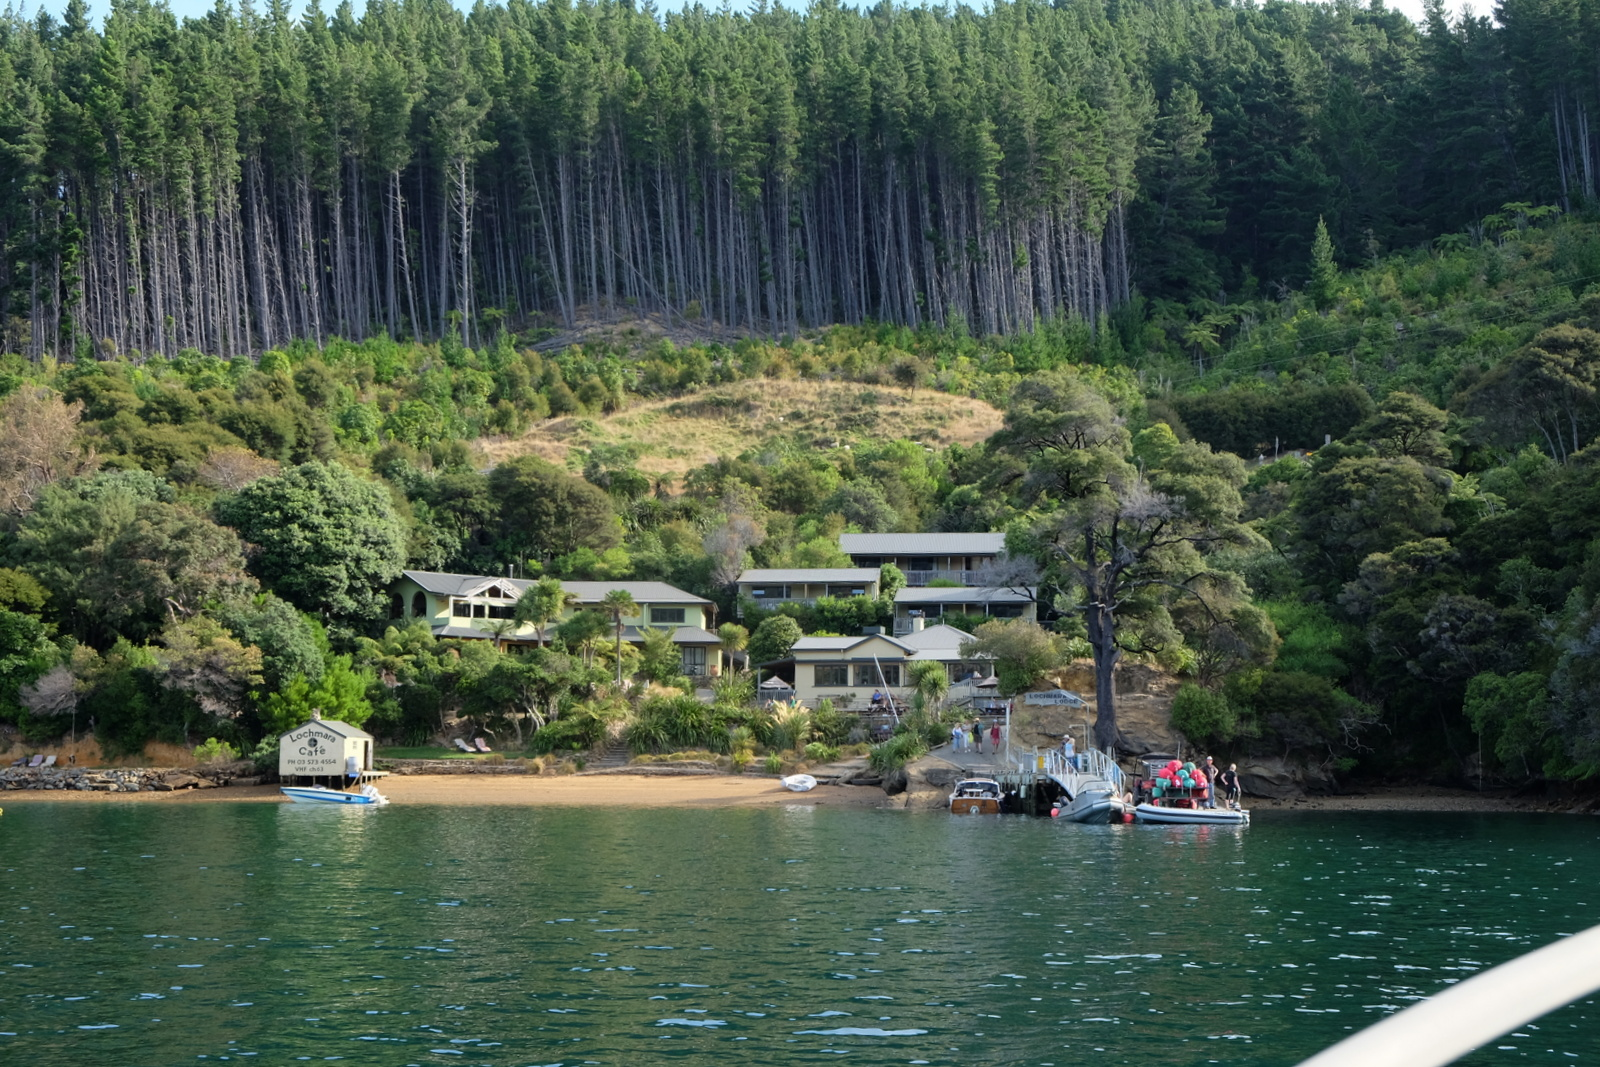 Lochmara Lodge is a quiet, tranquil spot near Picton, New Zealand. - JIM BYERS PHOTO